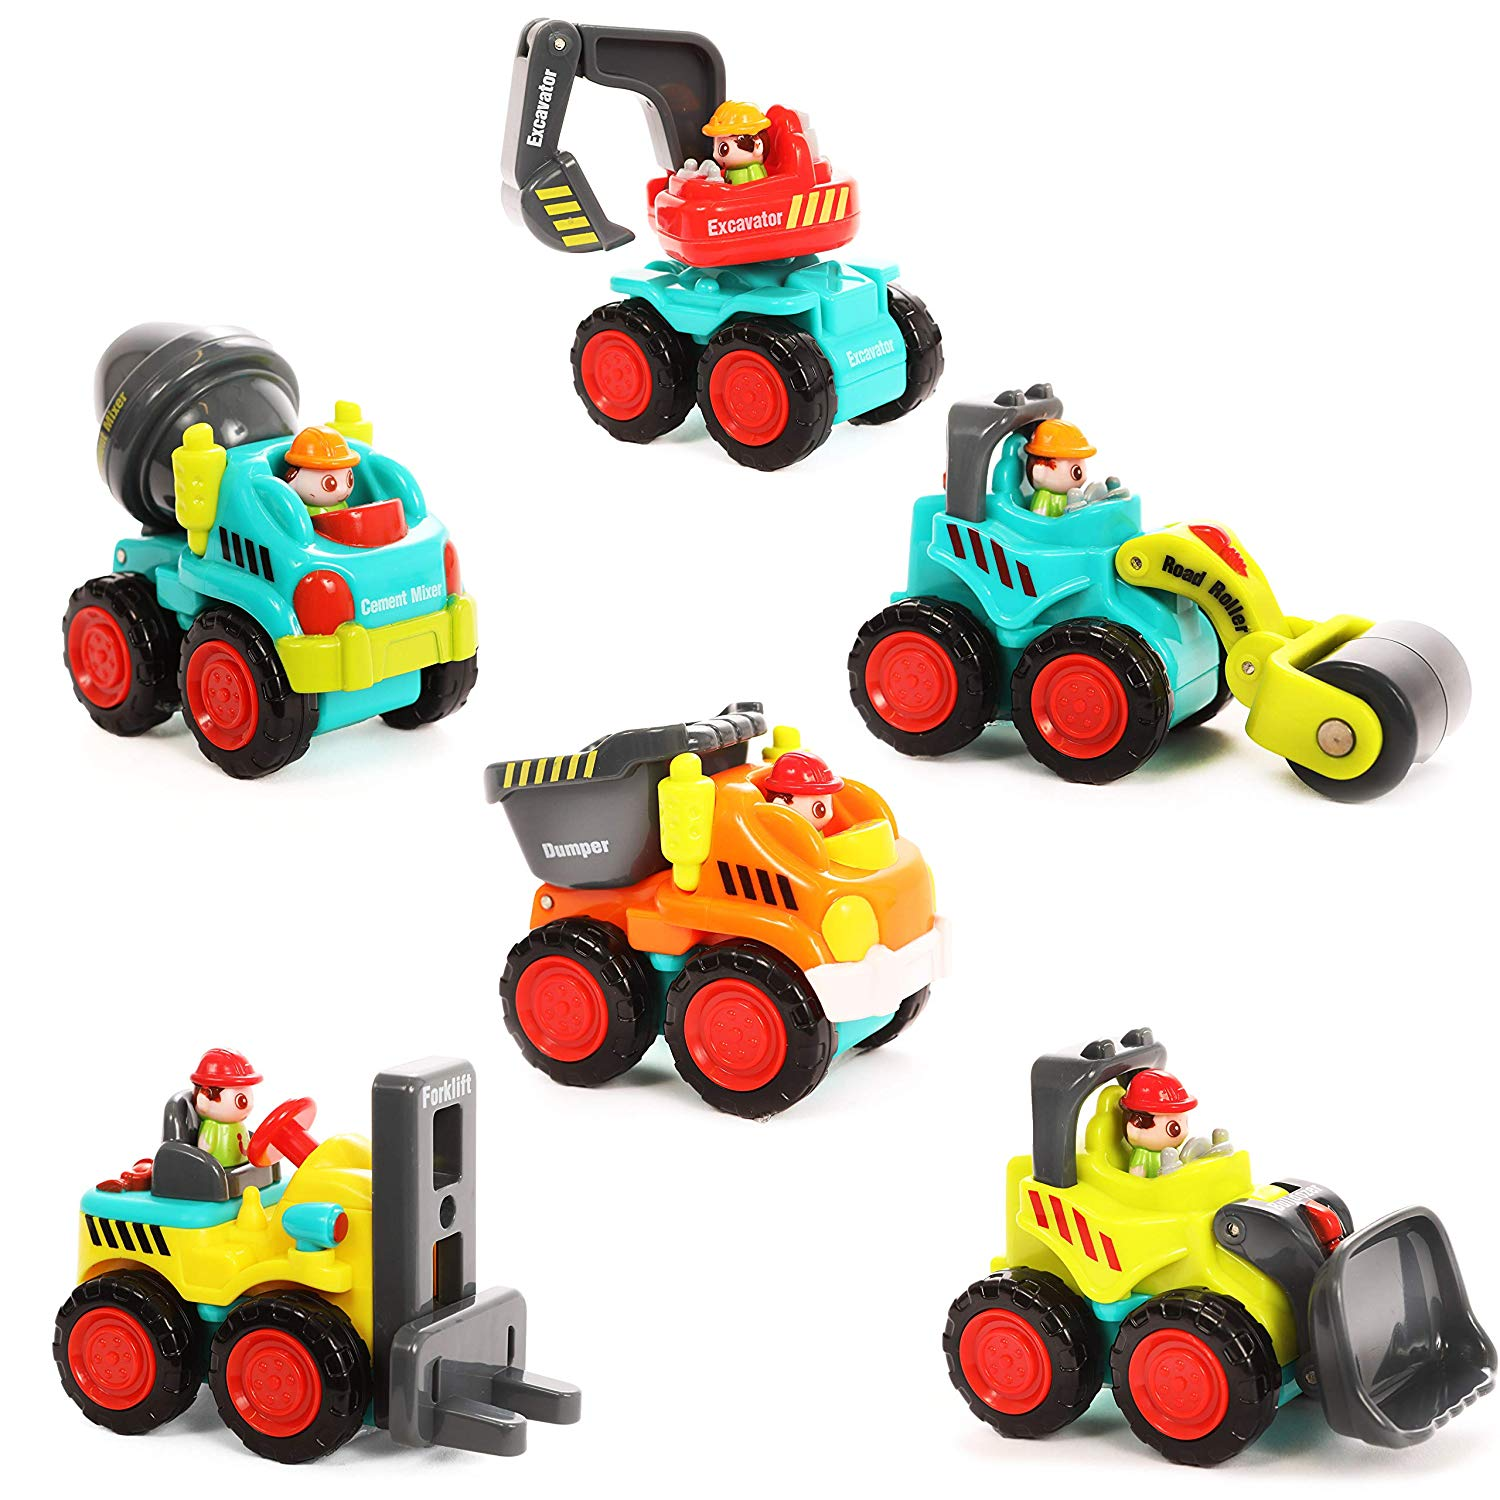 IQ Toys Push & Play Vehicles for Toddlers, Kids, Boys 6 Pack Friction Powered Action City Construction Engineering Playset with Mini Bulldozer, Excavator, Dumper, Cement Mixer, Forklift and Road Paver